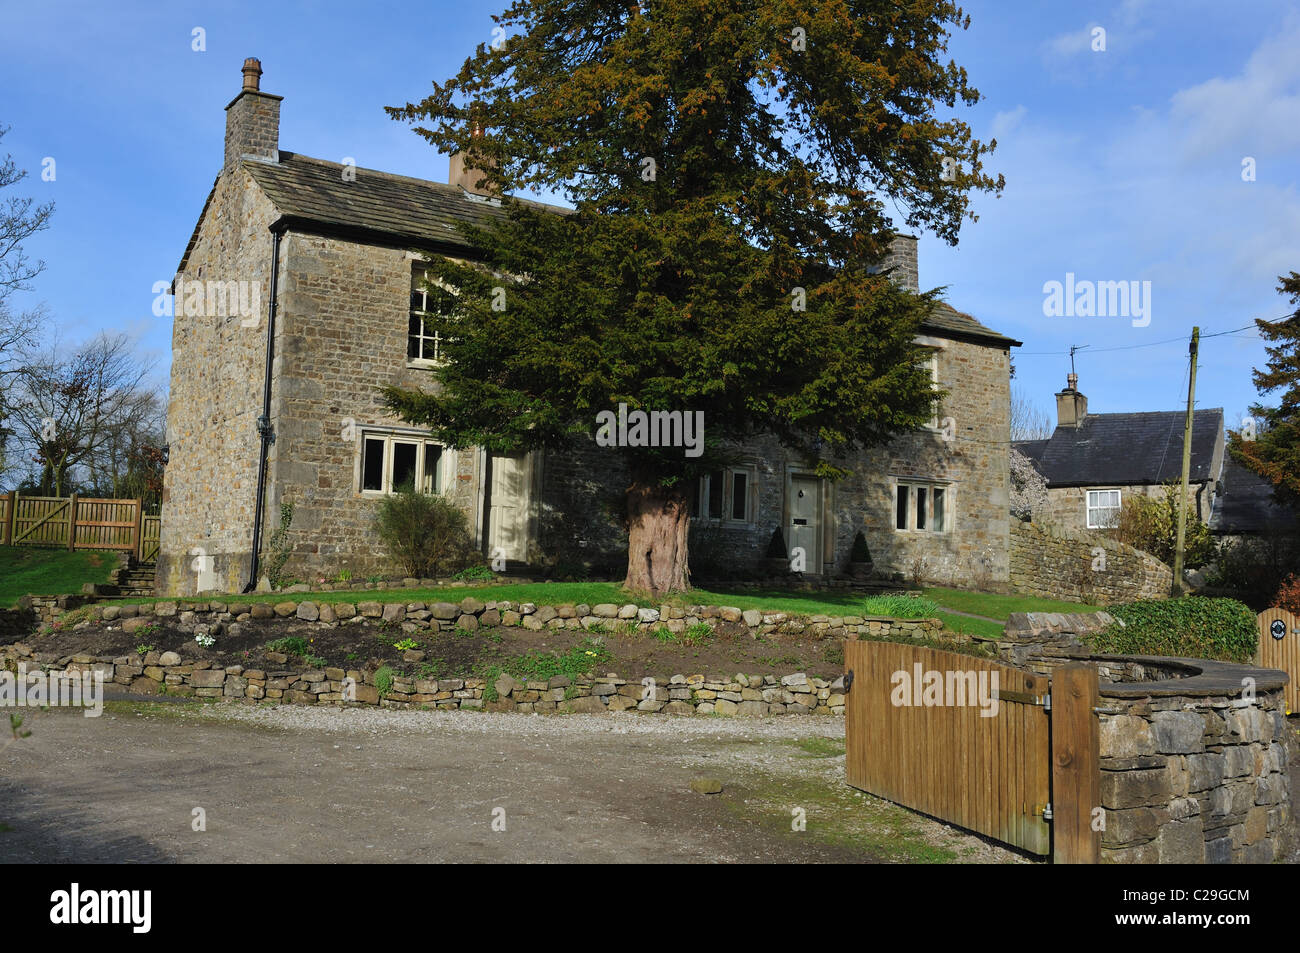 Typical farmworkers cottage built around 1750, Bolton by Bowland  with Yew tree in the garden - Stock Image